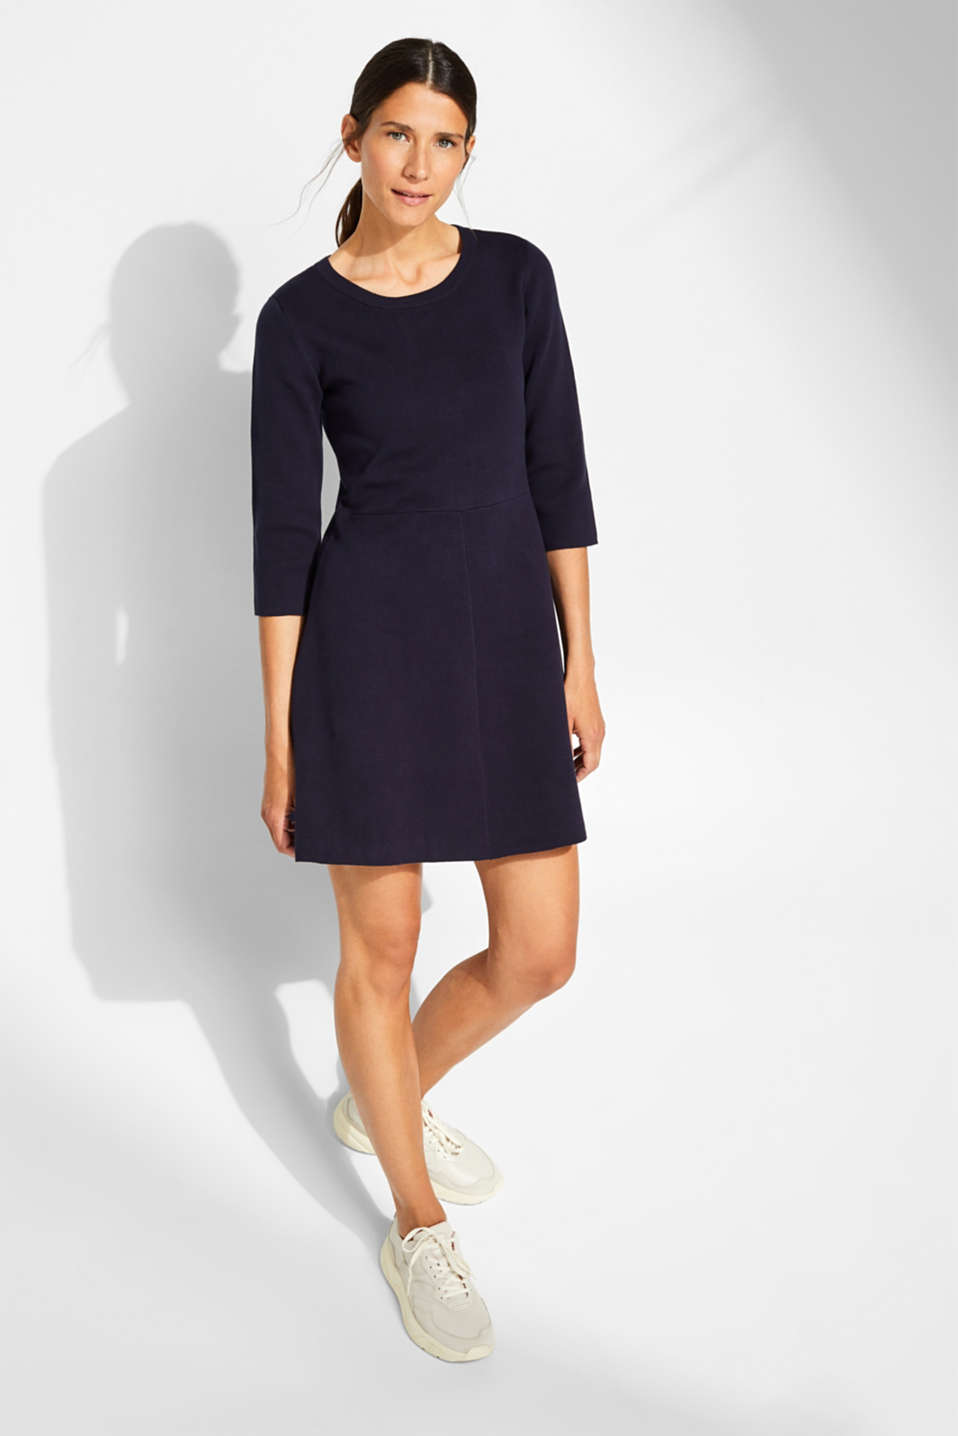 Compact knit dress in an A-line silhouette, NAVY, detail image number 1